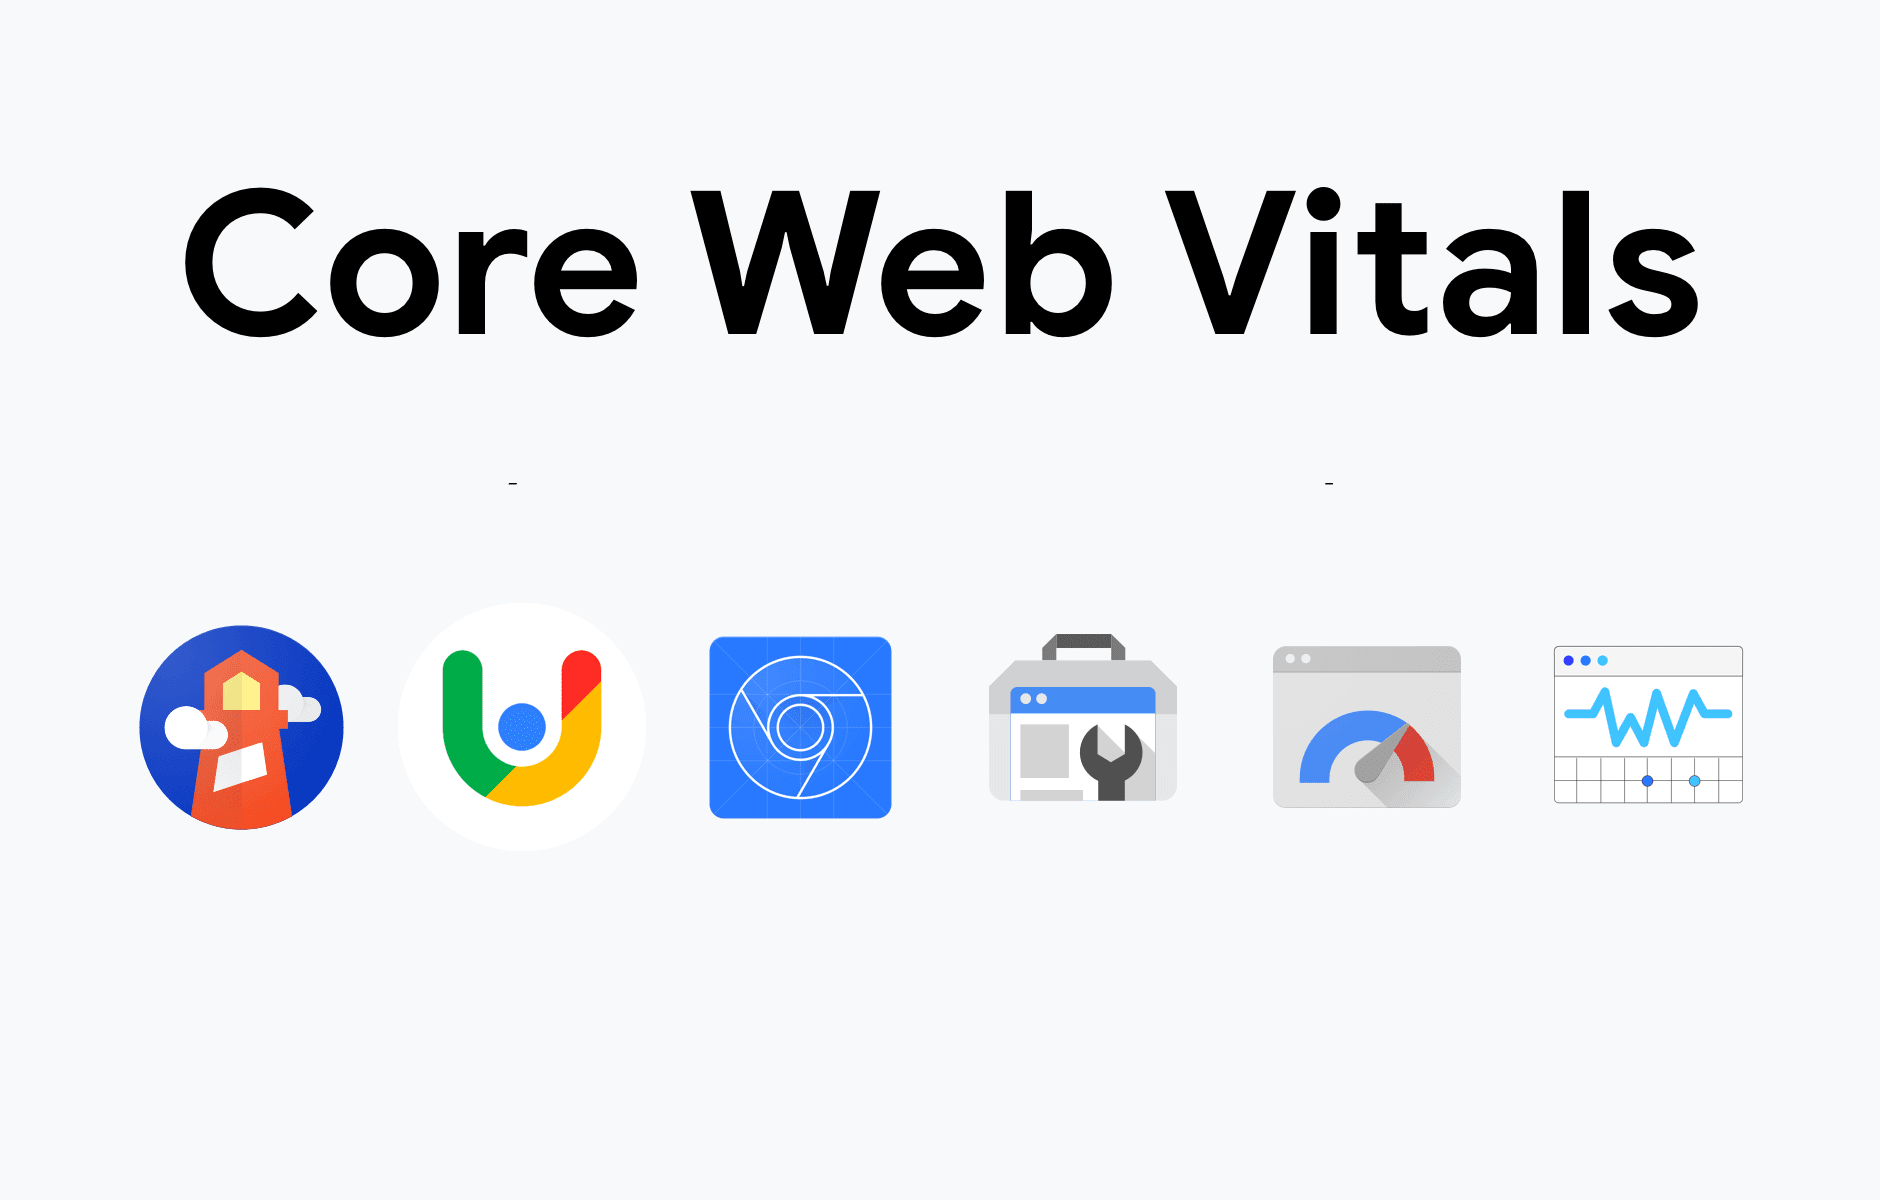 Core Web Vitals inscription and Google icons